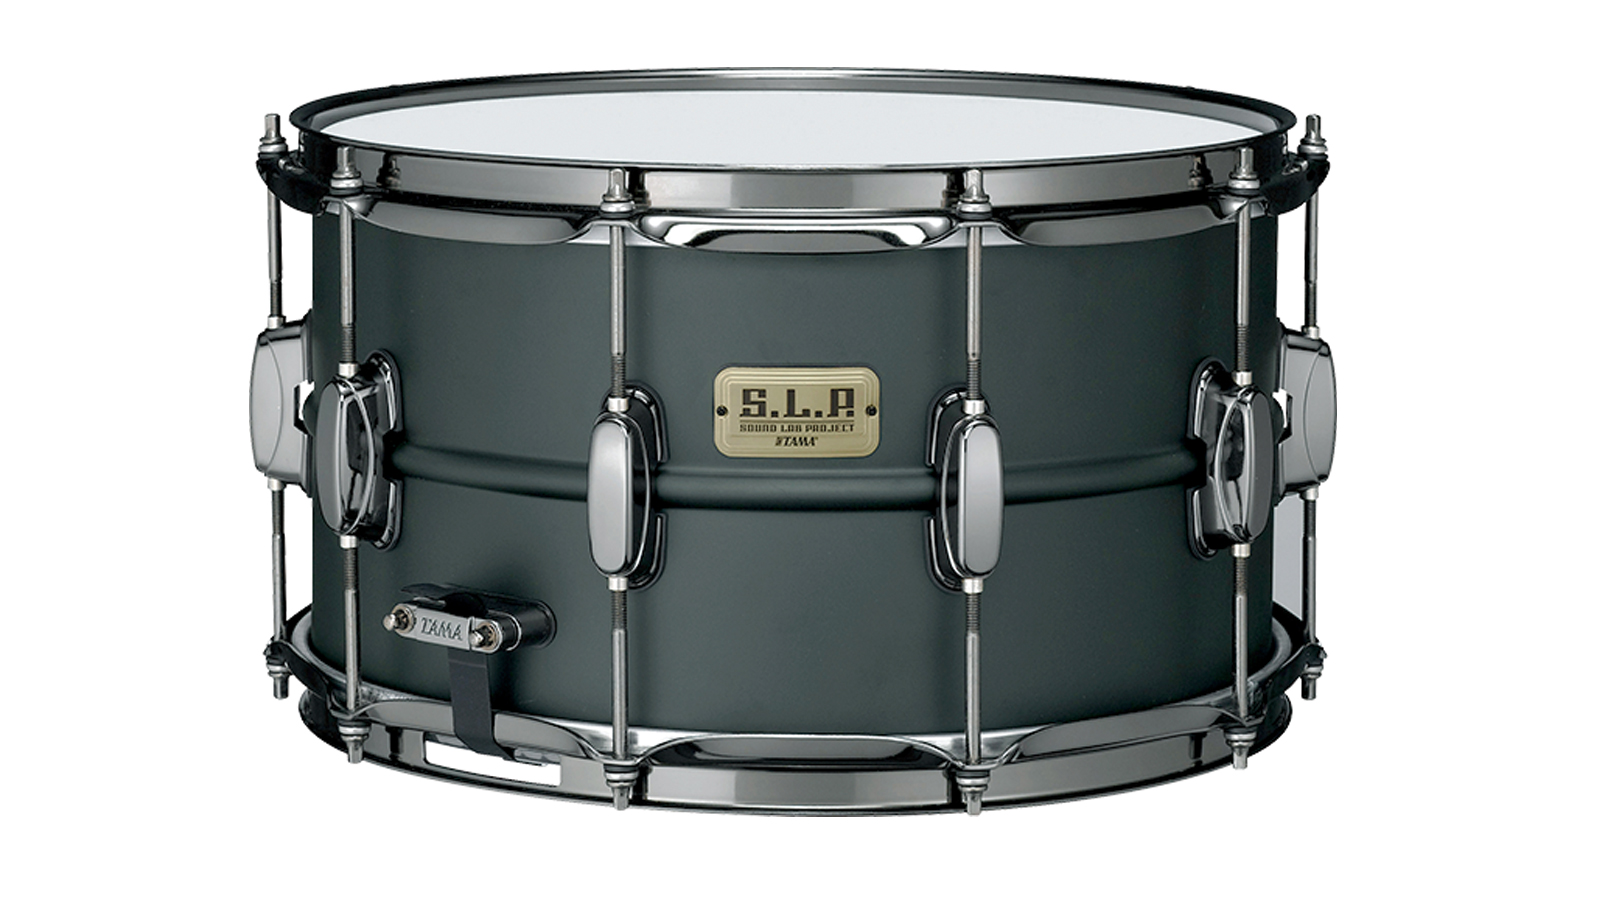 Tama LST158 S.L.P. Big Black Steel Snare 8x15